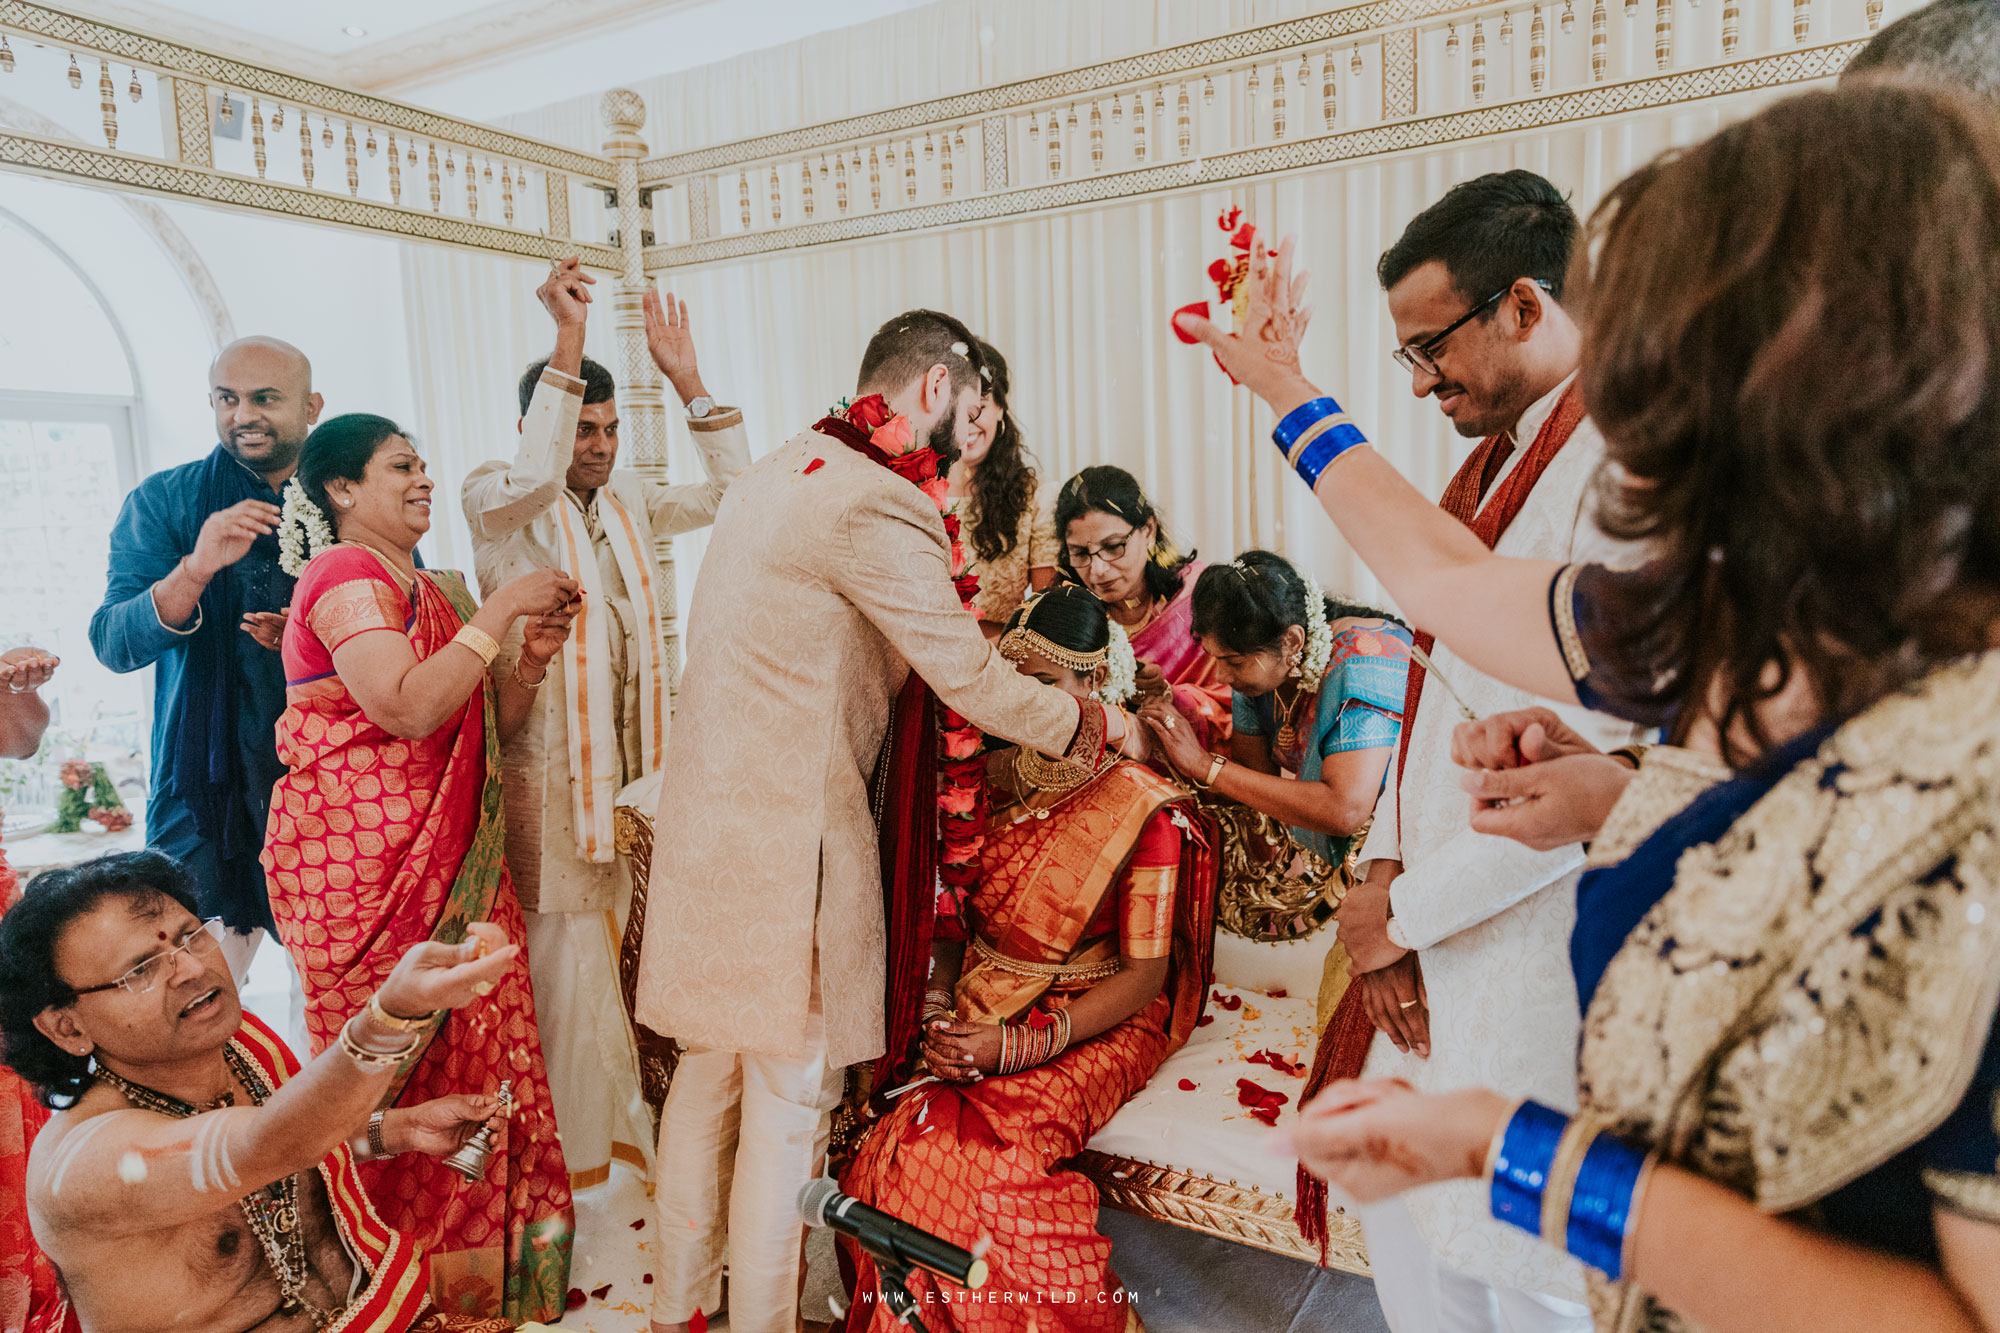 Northbrook_Park_Farnham_Surrey_London_Wedding_Hindu_Fusion_Esther_Wild_Photographer_IMG_4509.jpg